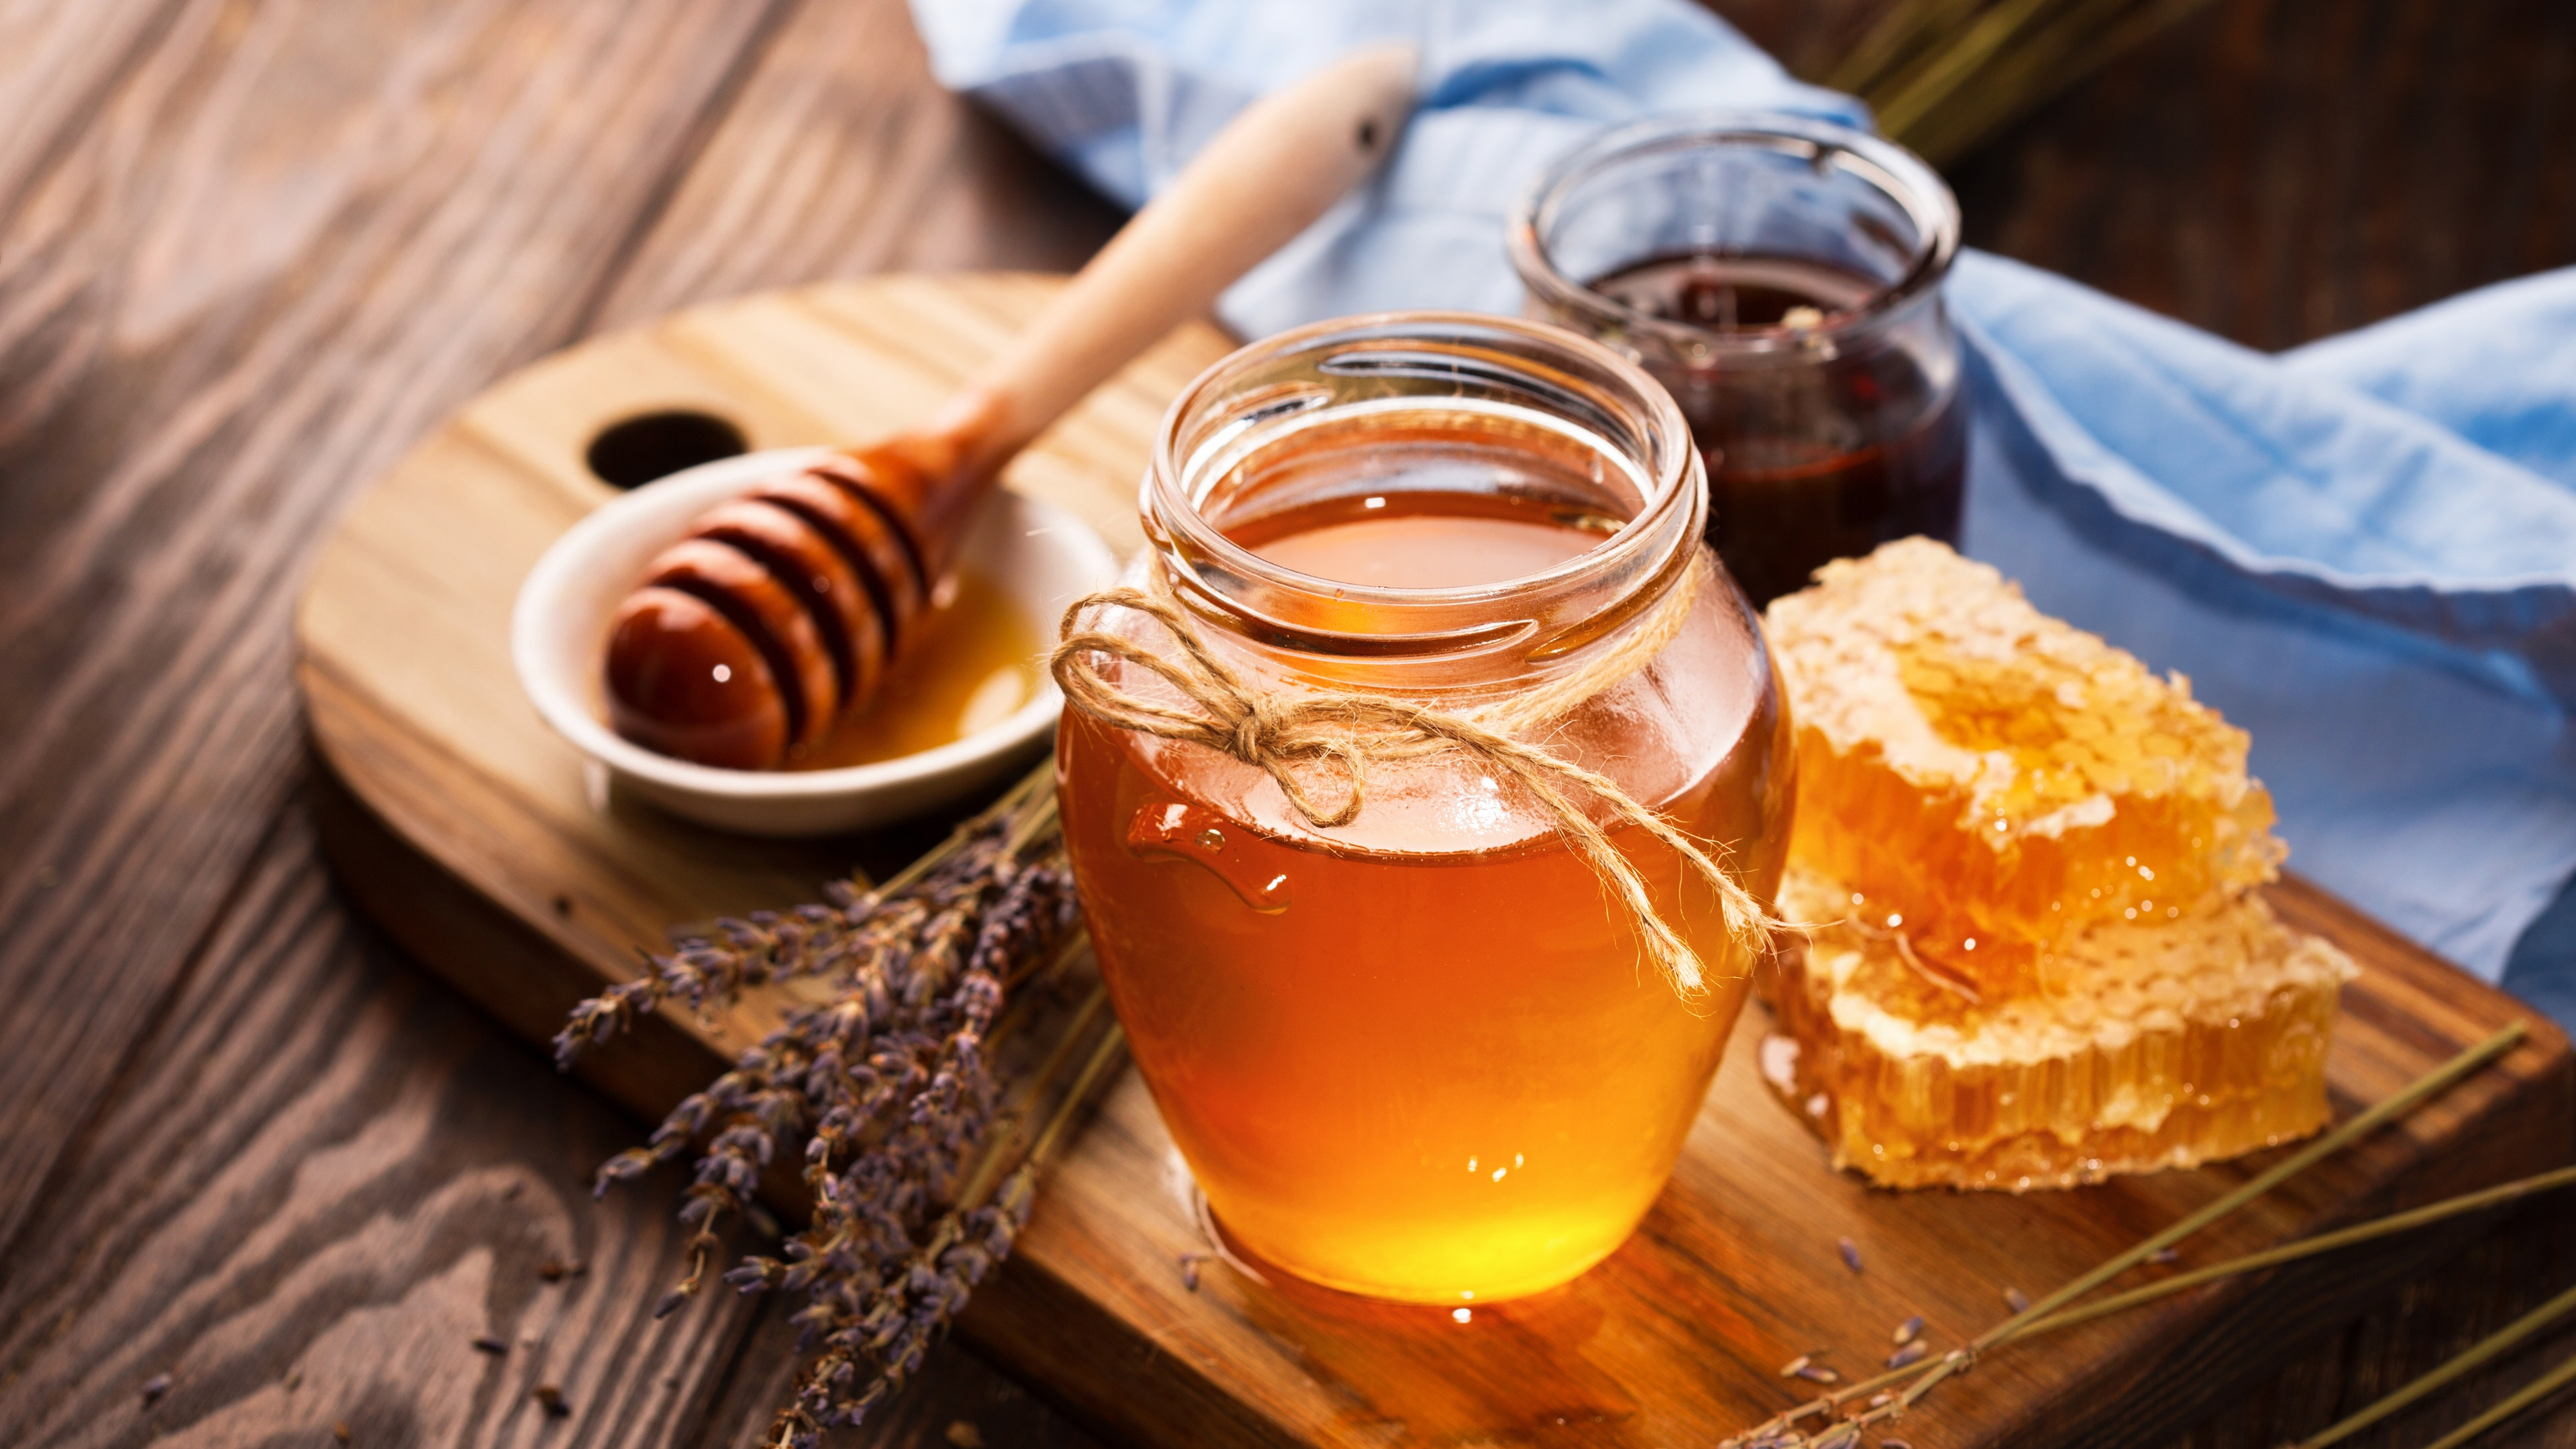 http://home.bt.com/images/6-surprising-health-benefits-of-honey-136426474967702601-180416092019.jpg